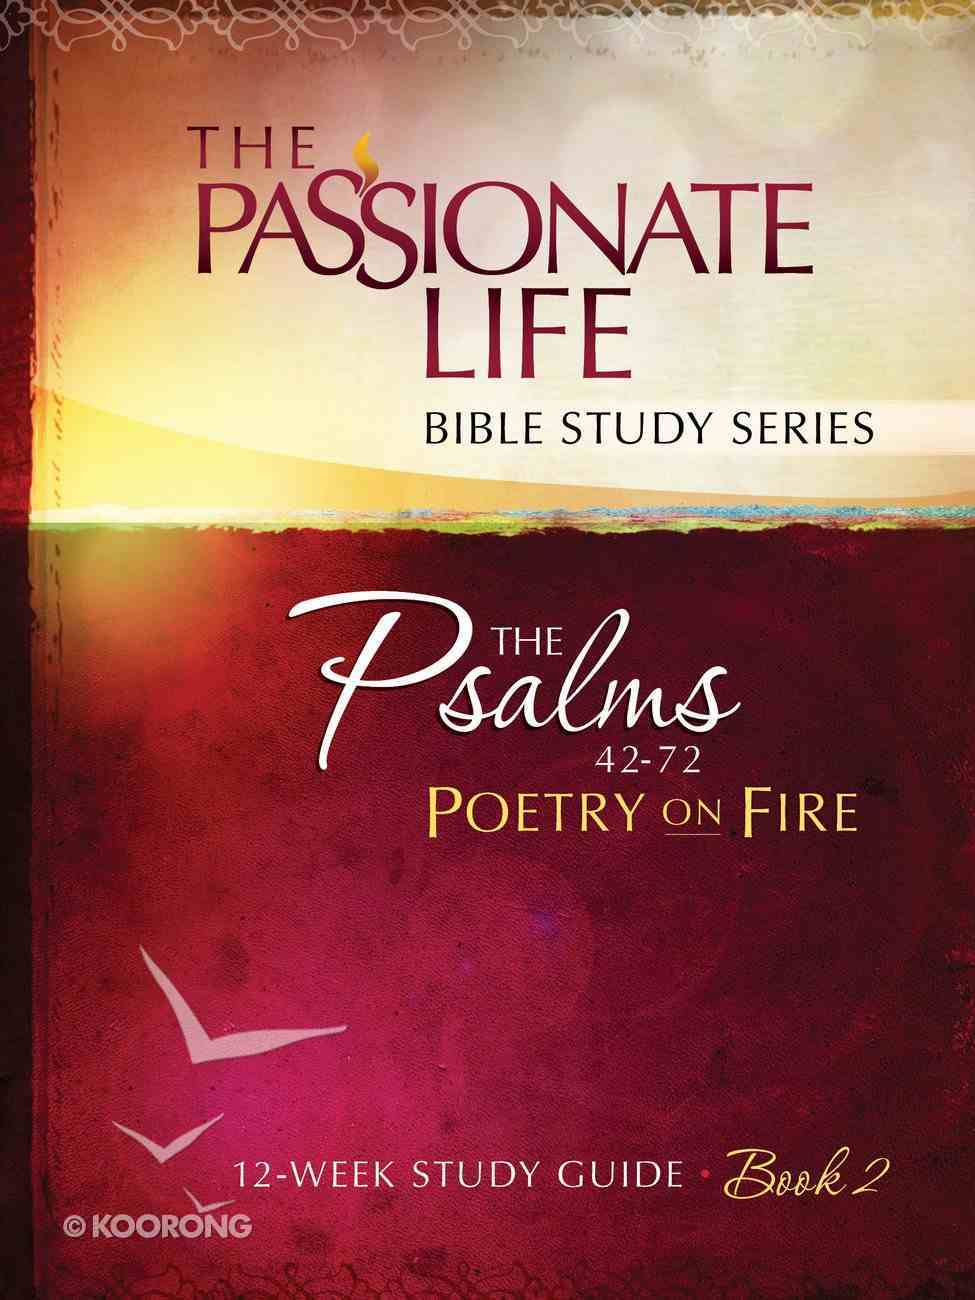 Psalms: Poetry on Fire Book Two 12-Week Study Guide (The Passionate Life Bible Study Series) eBook